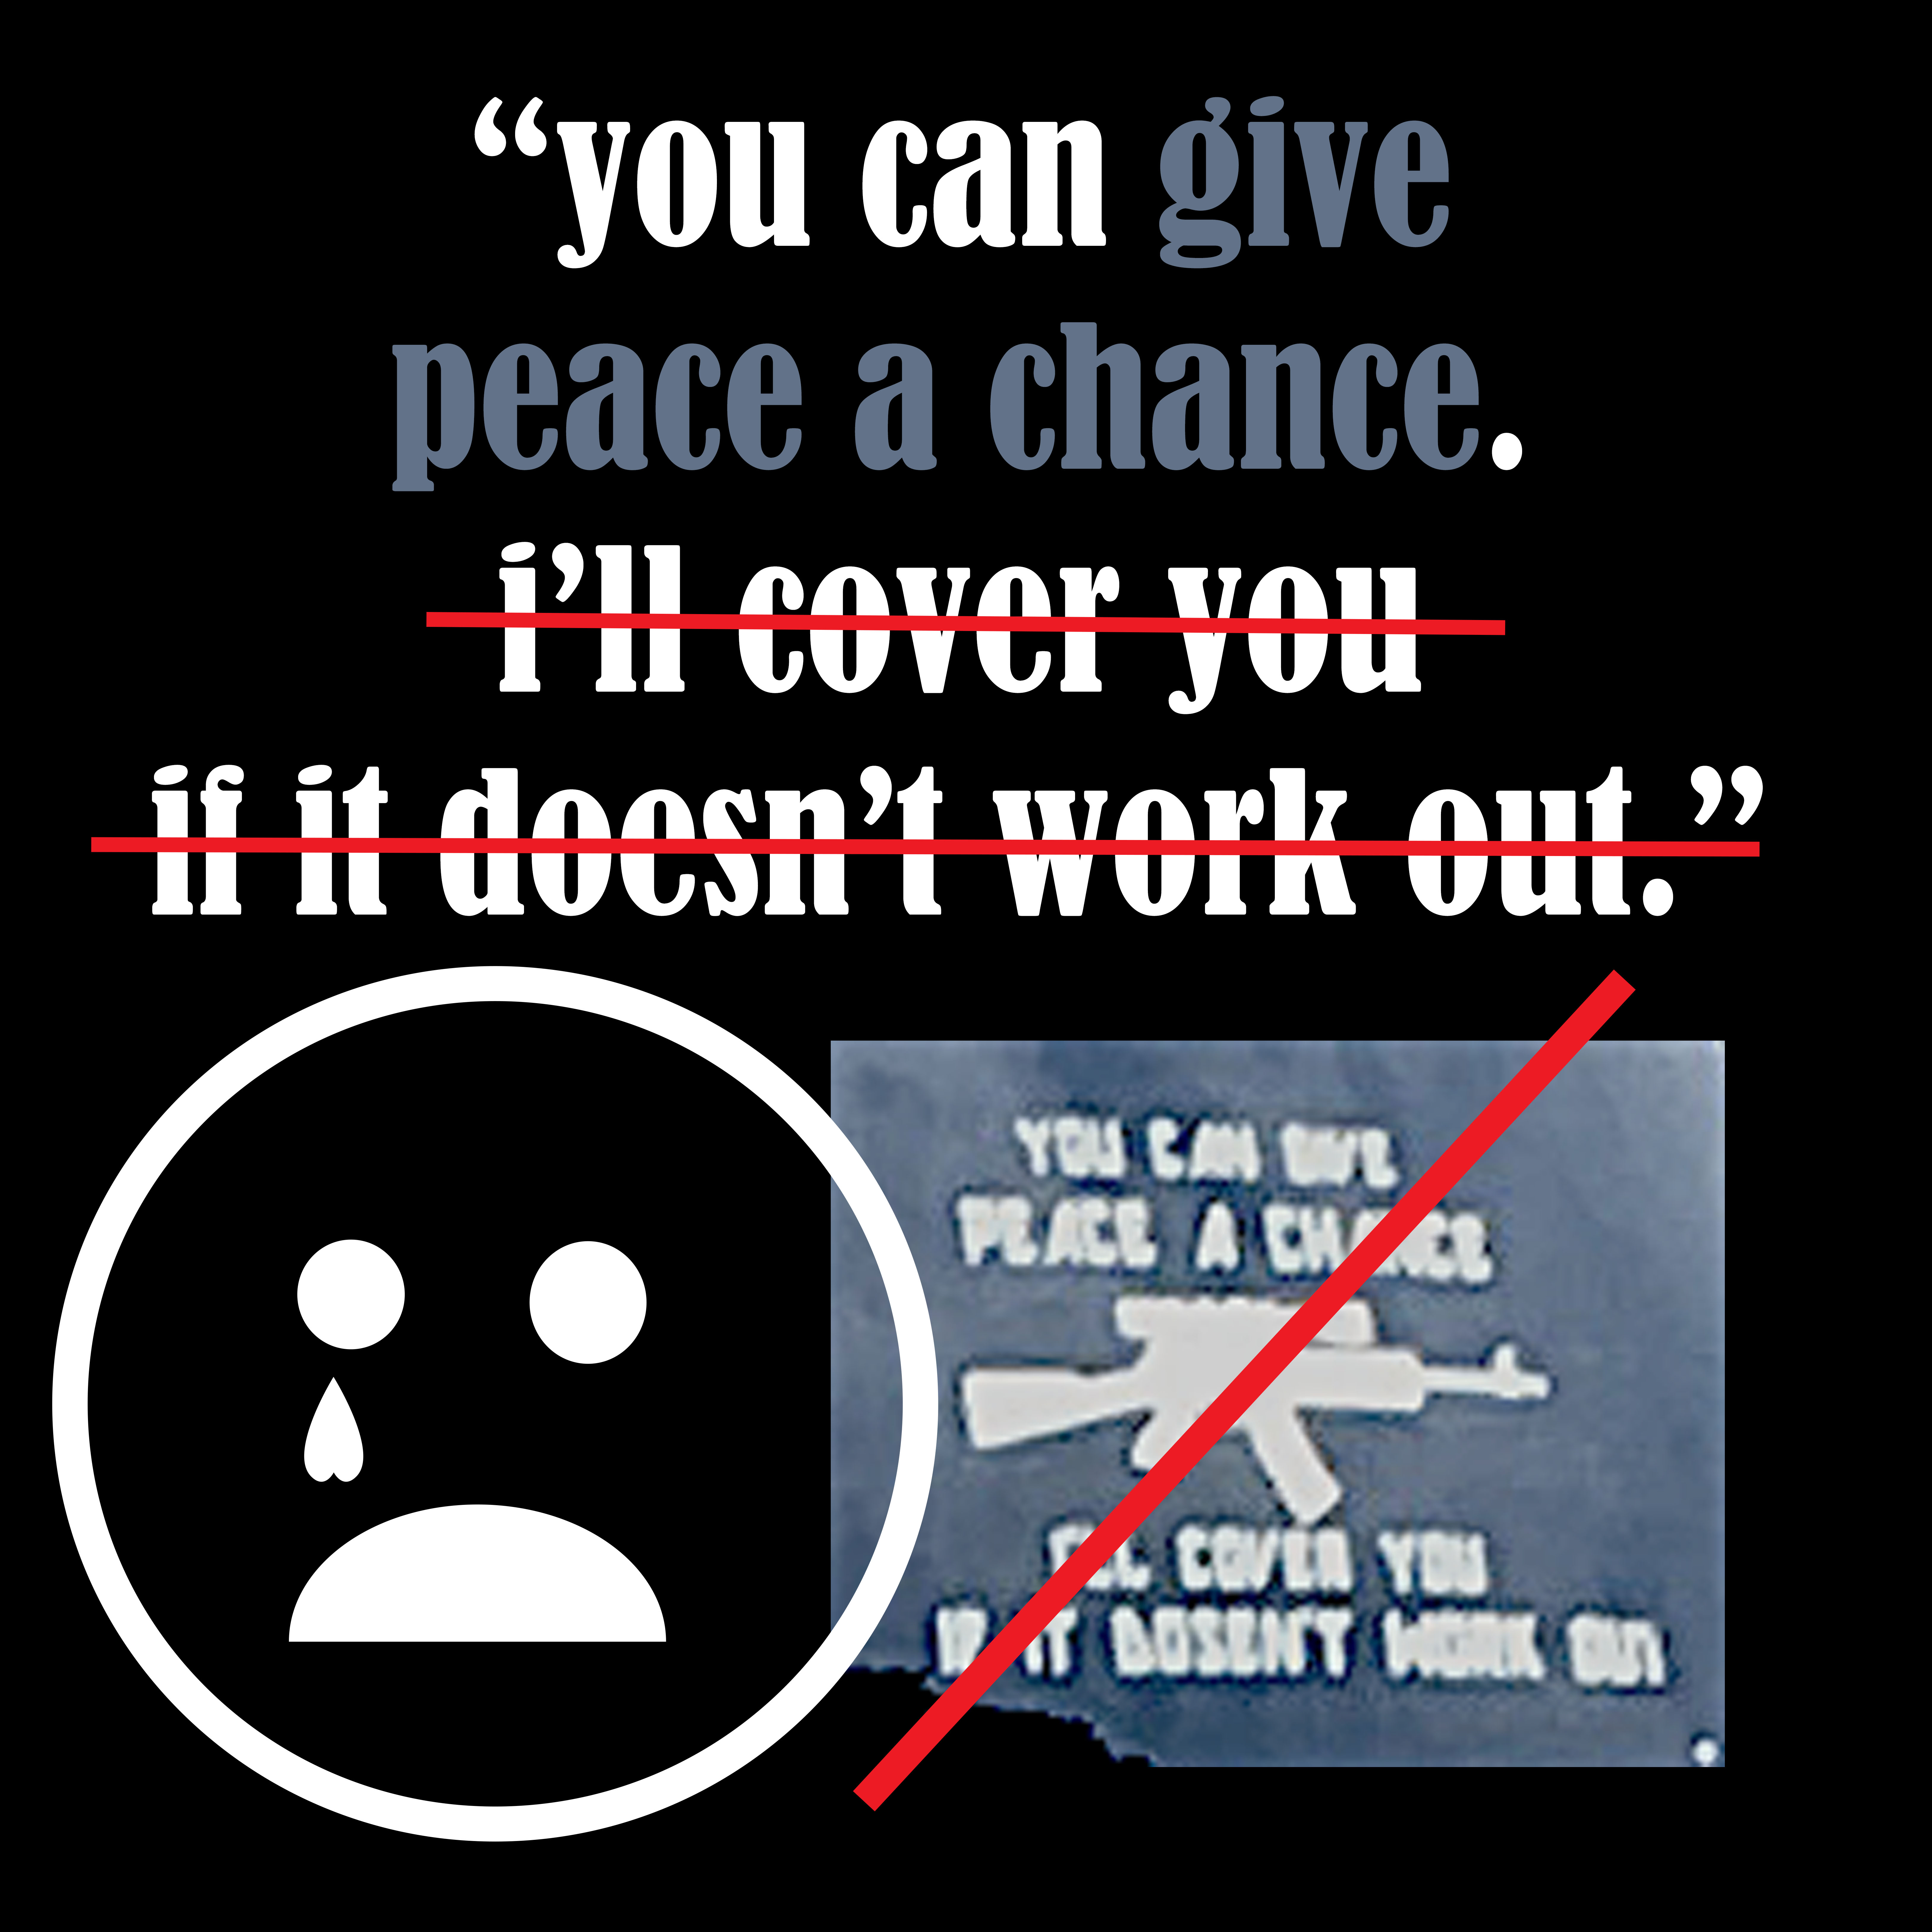 give peace a chance copy